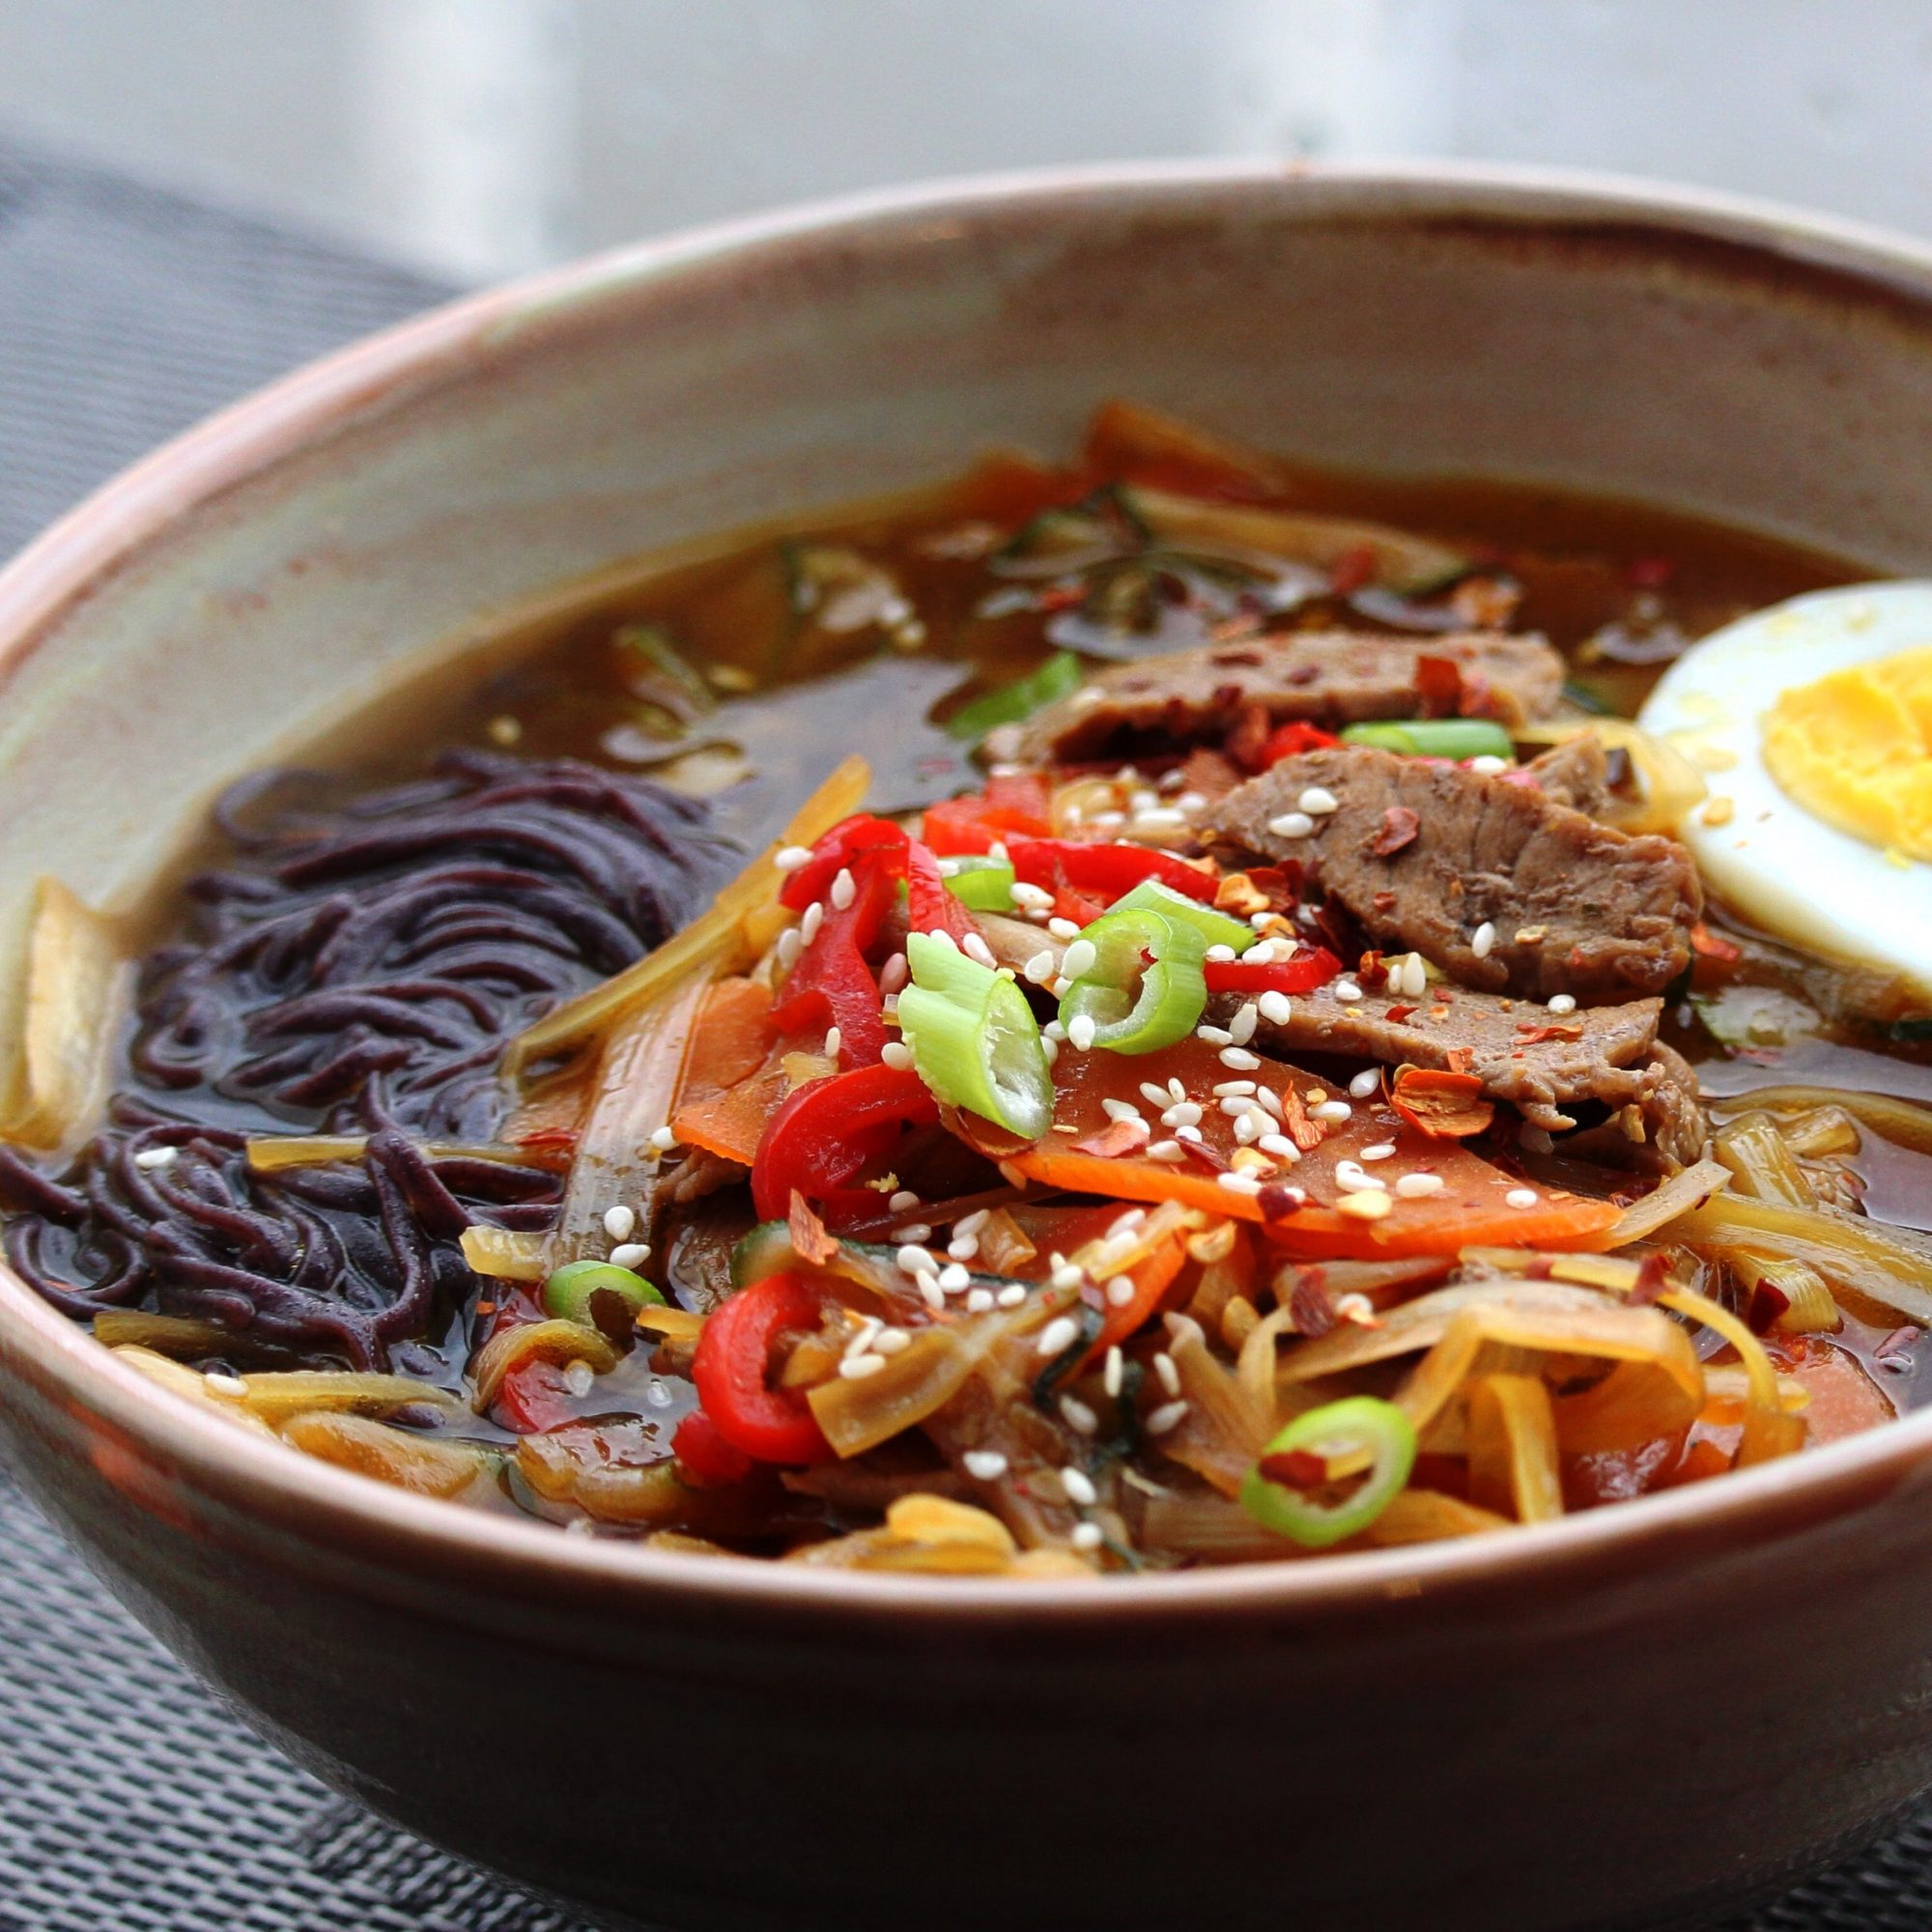 bowl of Asian-Themed Beef and Rice Noodle Soup with an egg on top